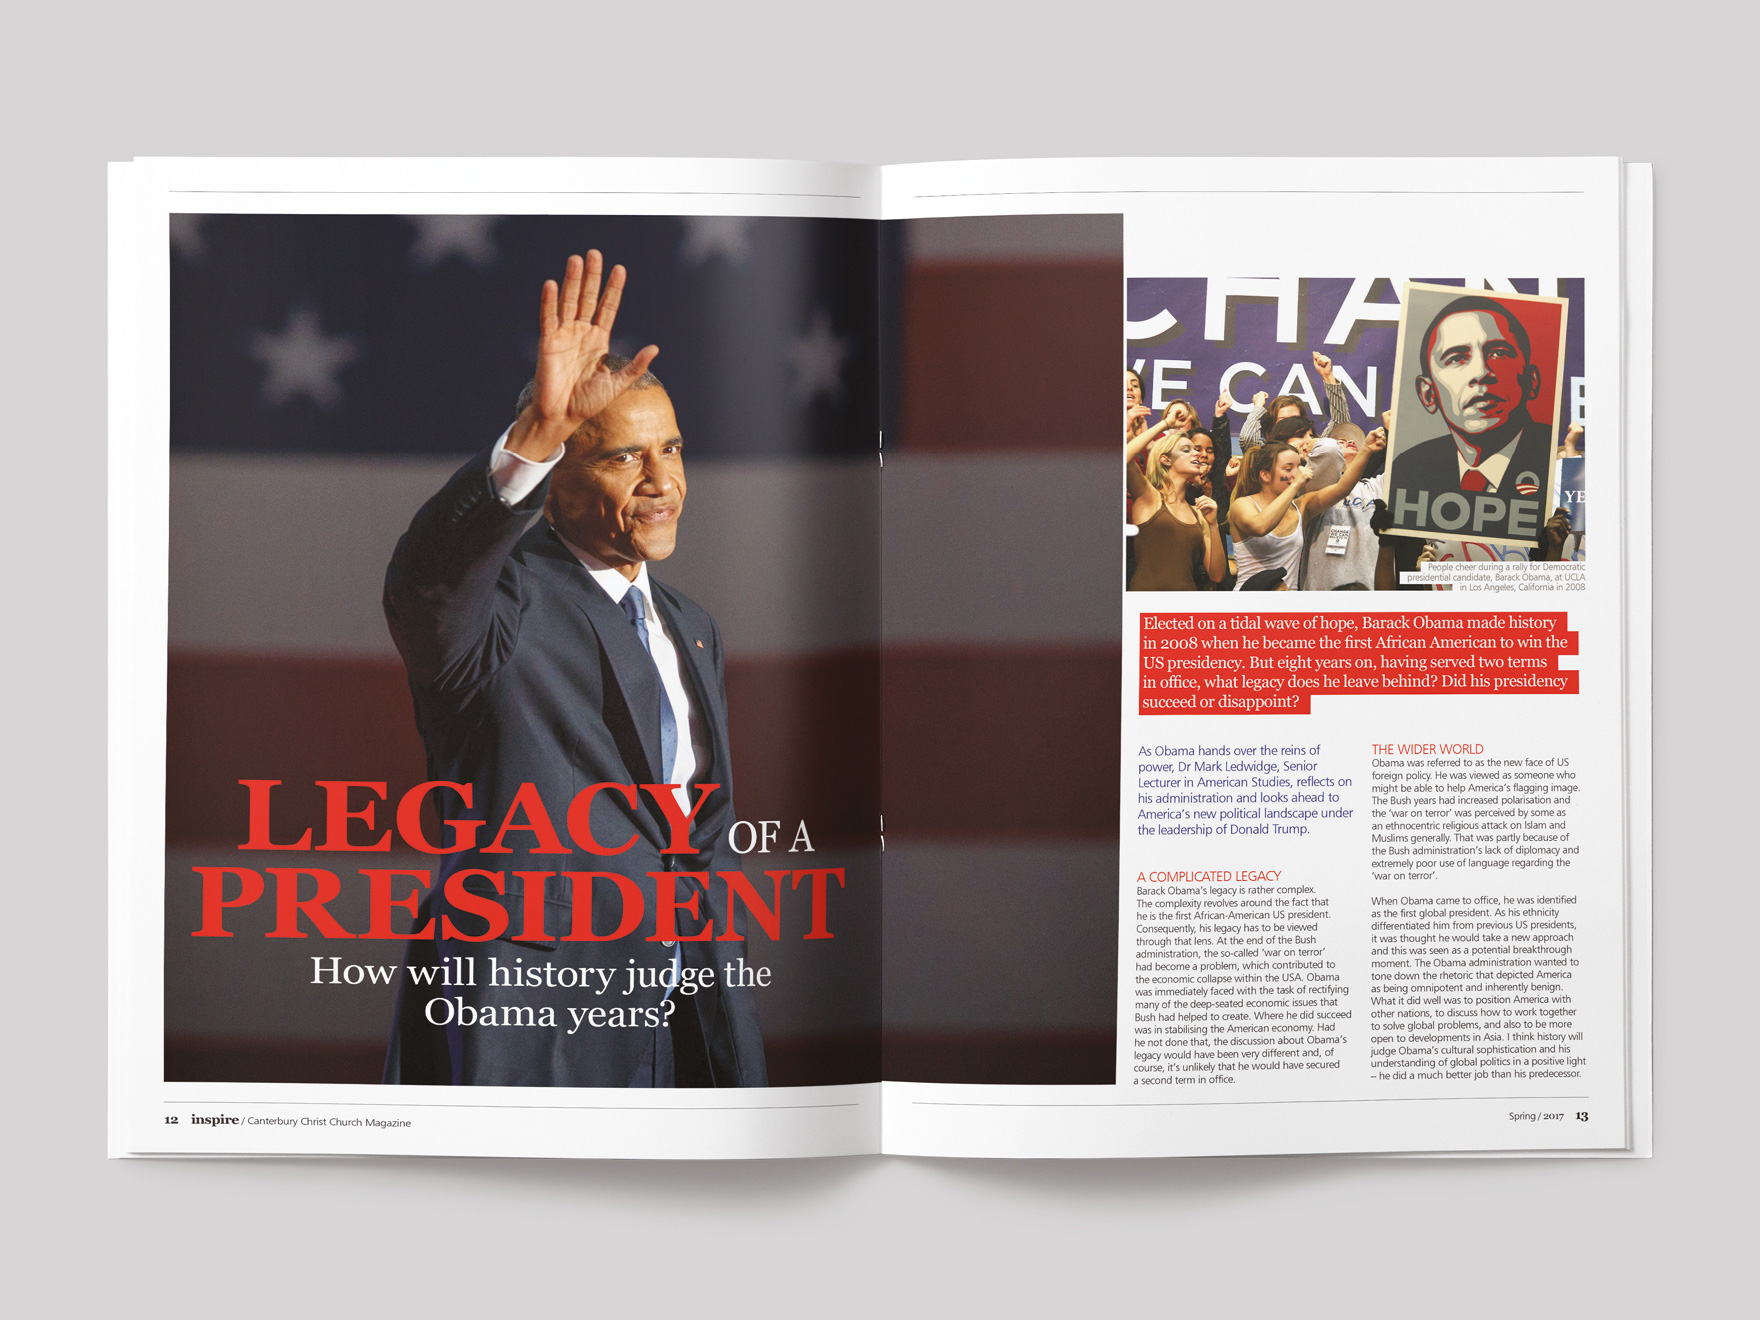 Inside pages from Inspire magazine, showing the opening pages of a feature on President Obama